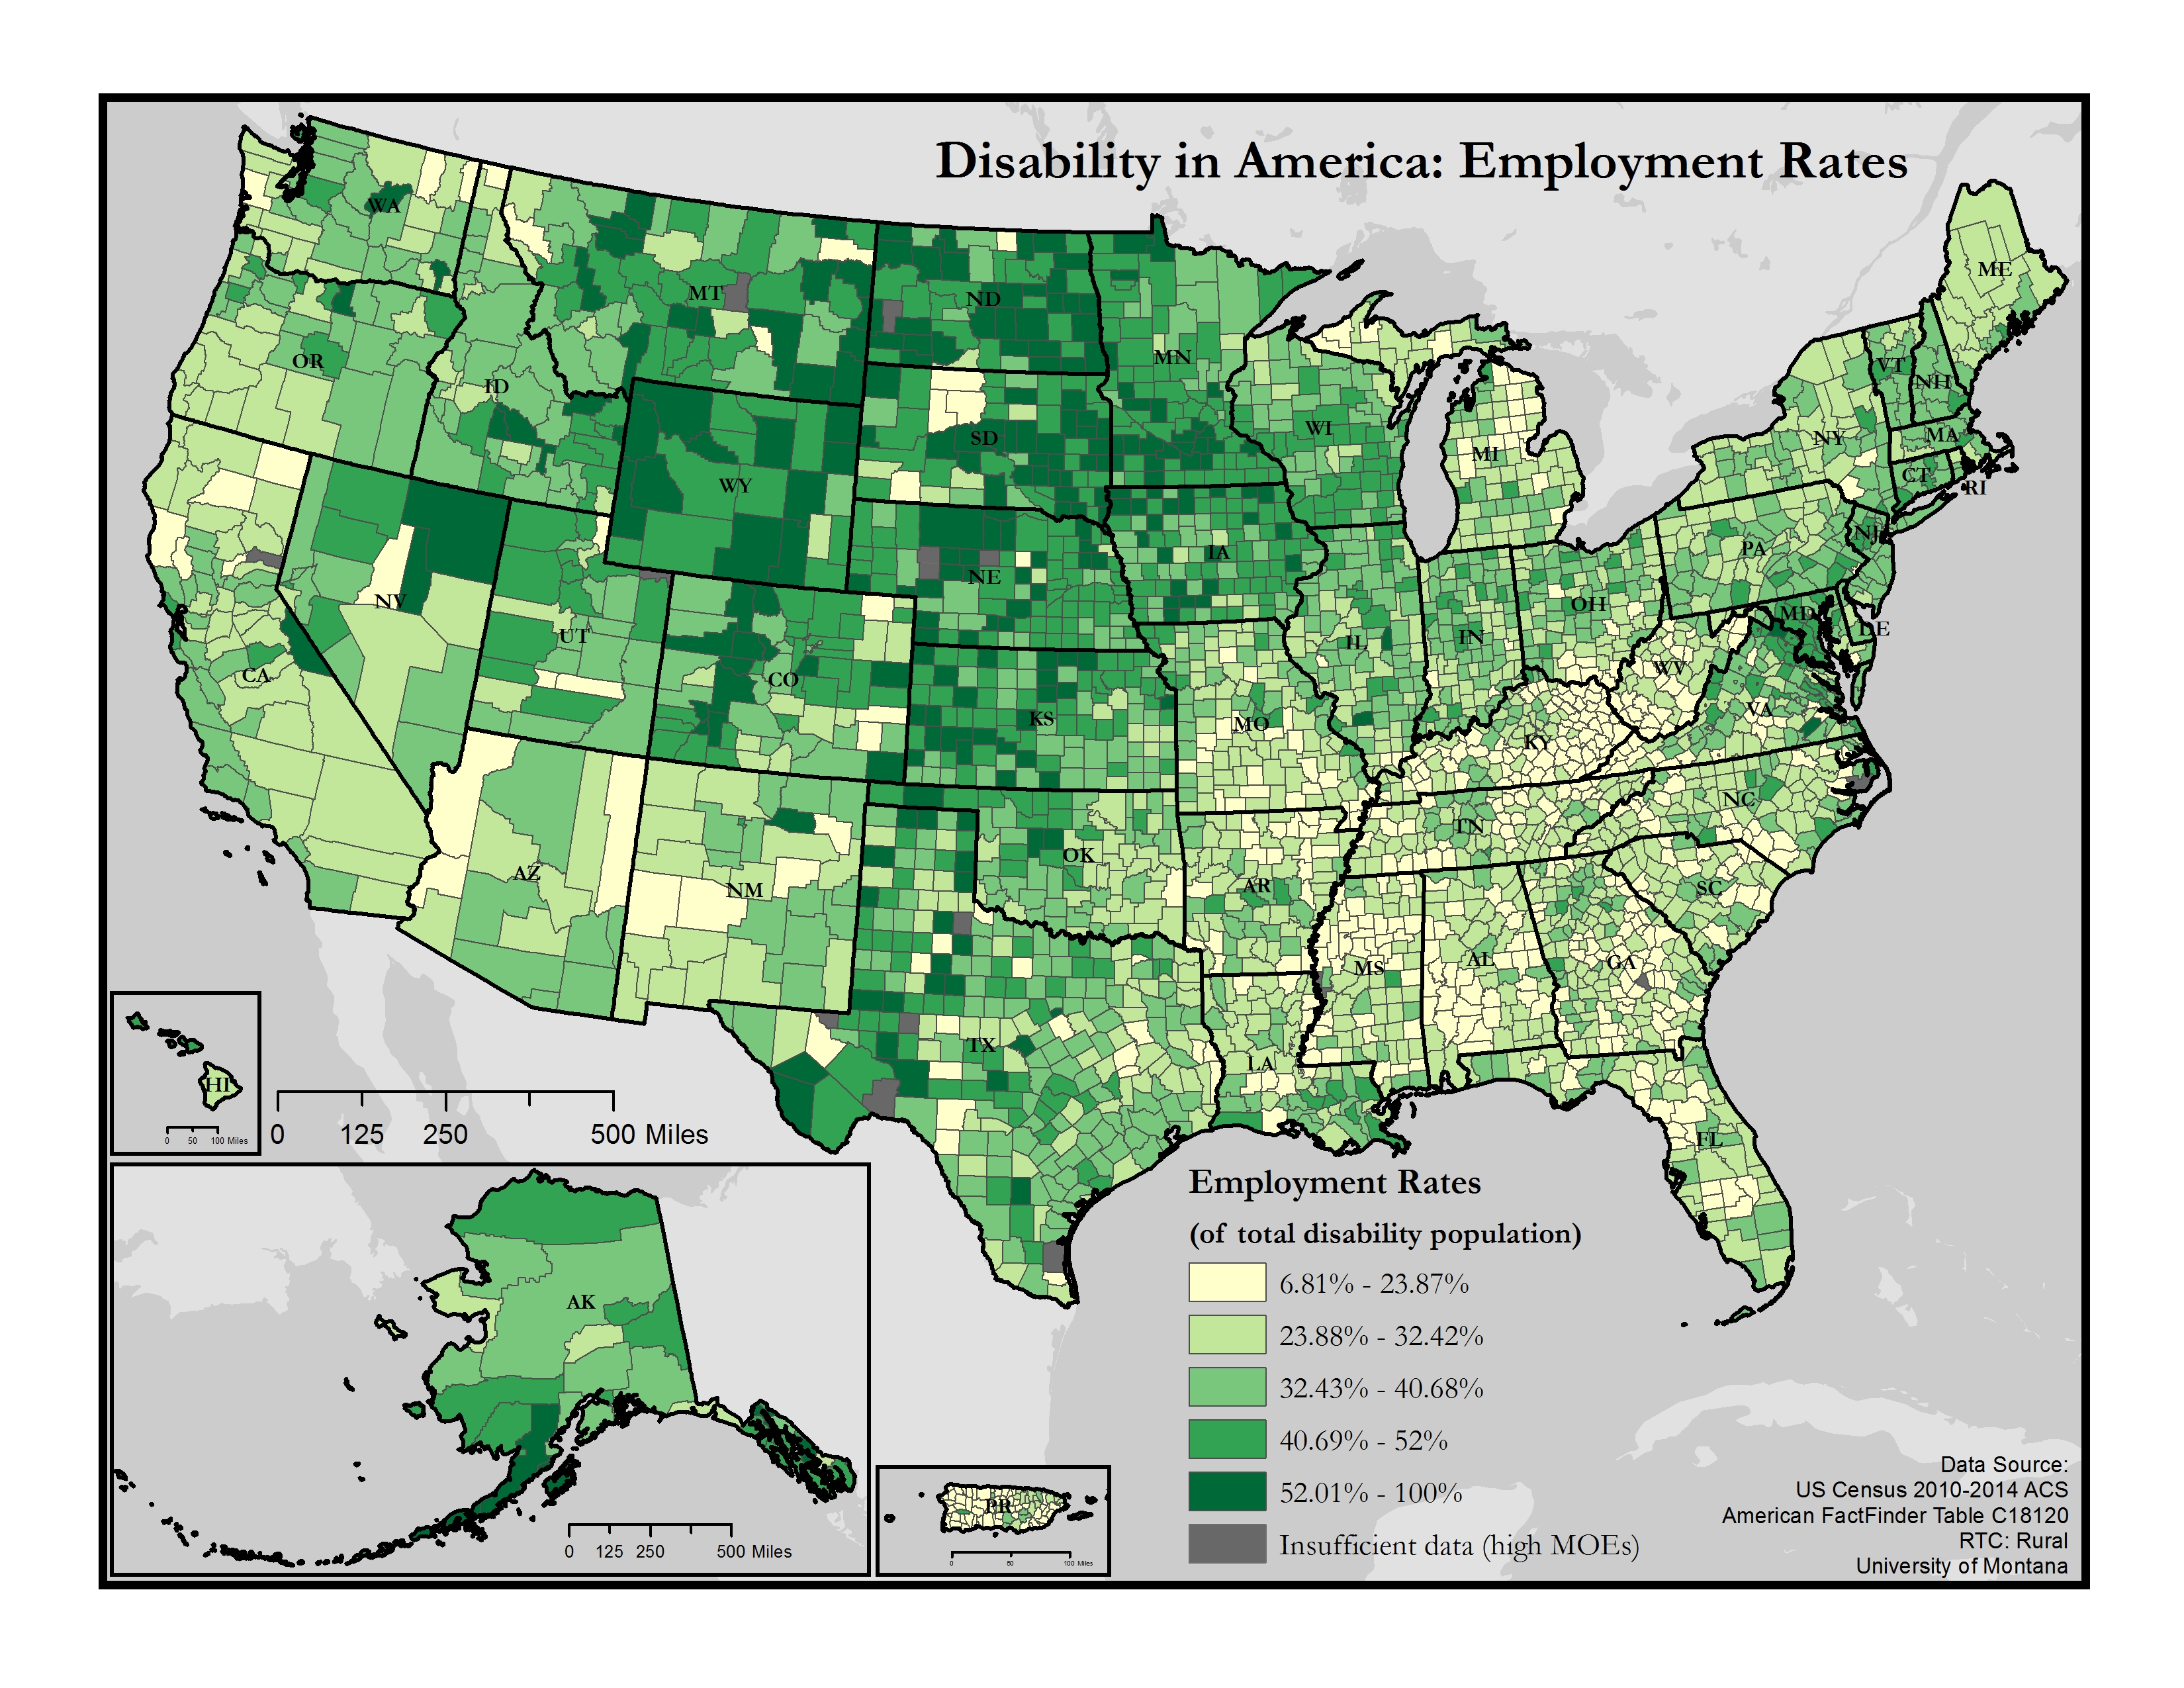 Maps of Disability and Employment - RTC:Rural  States Of America Map on preppiest colleges in america, map southern utah university, map of america 50 states and capitals, map of united america, 50 worst states in america, people's republic of america, highway map of america, map united states happiness, map of america coloring page, map of the 52 states, list all 52 states america, 52 states in america, map of usa with state names, map north, united republic of america, map of states of america, healthiest state in america, list 52 states of america, name 52 states of america, american states map with america,